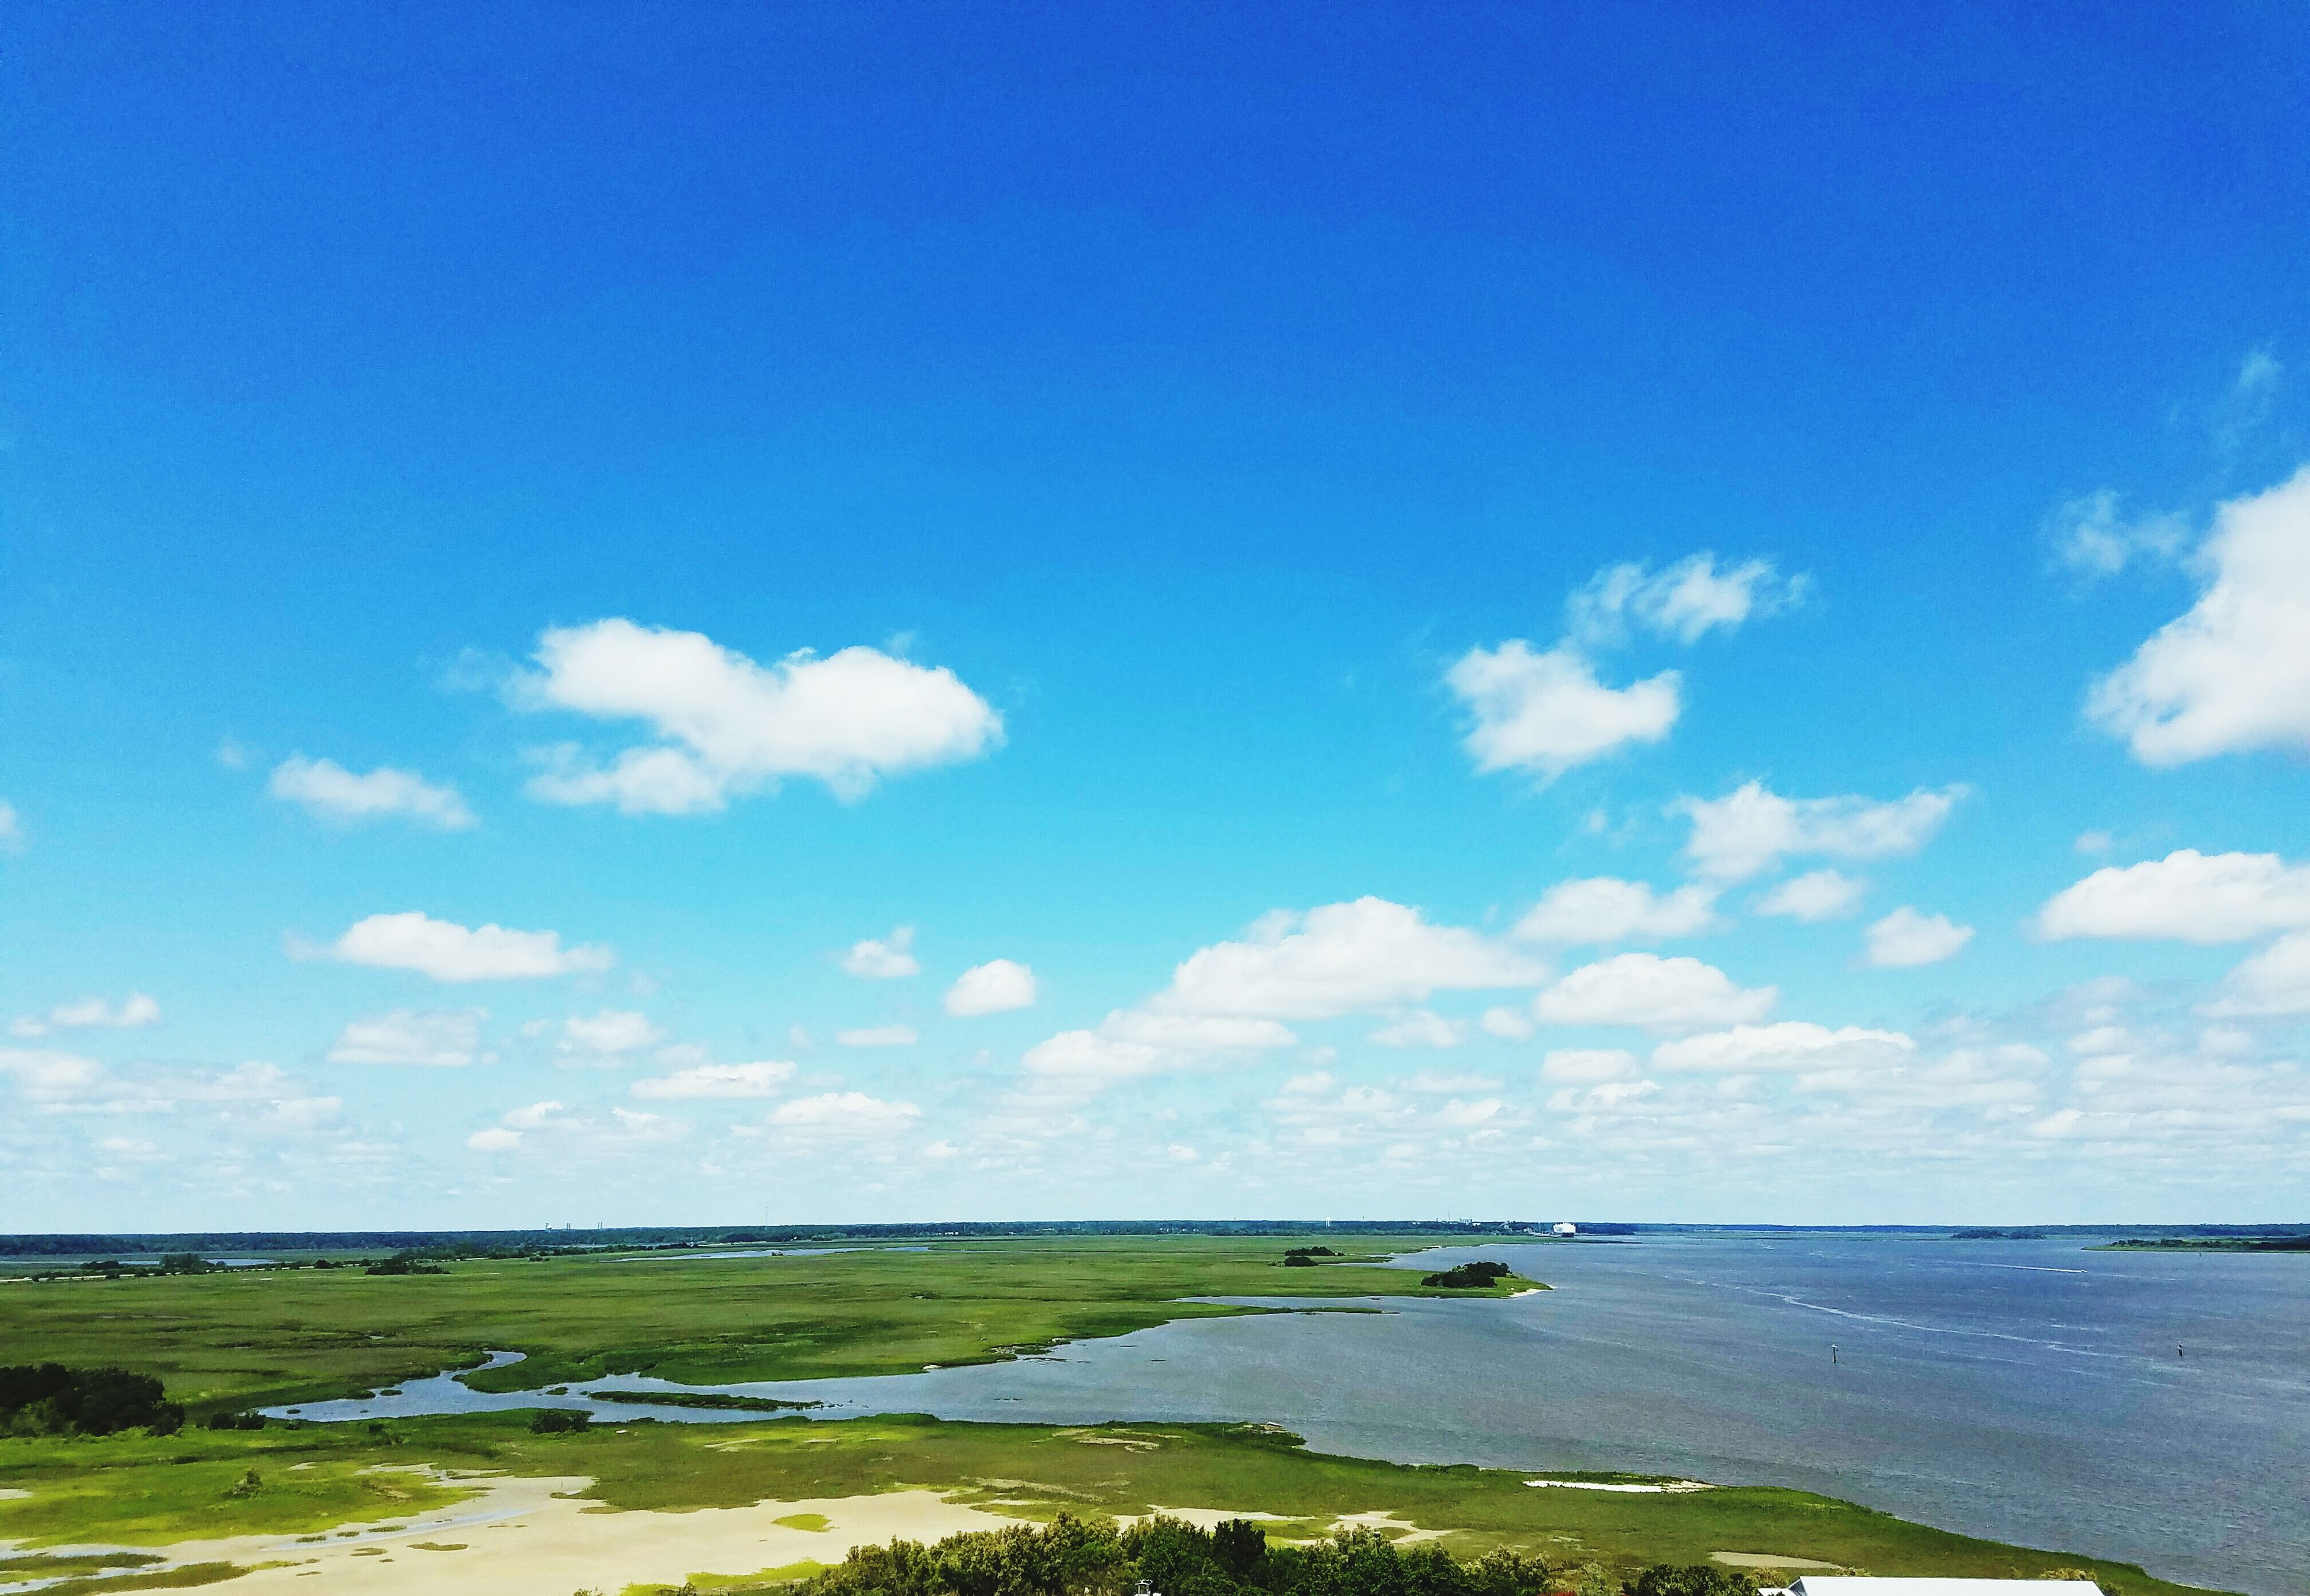 sea, tranquil scene, sky, blue, tranquility, water, horizon over water, scenics, beauty in nature, nature, grass, cloud, landscape, beach, idyllic, cloud - sky, day, coastline, field, remote